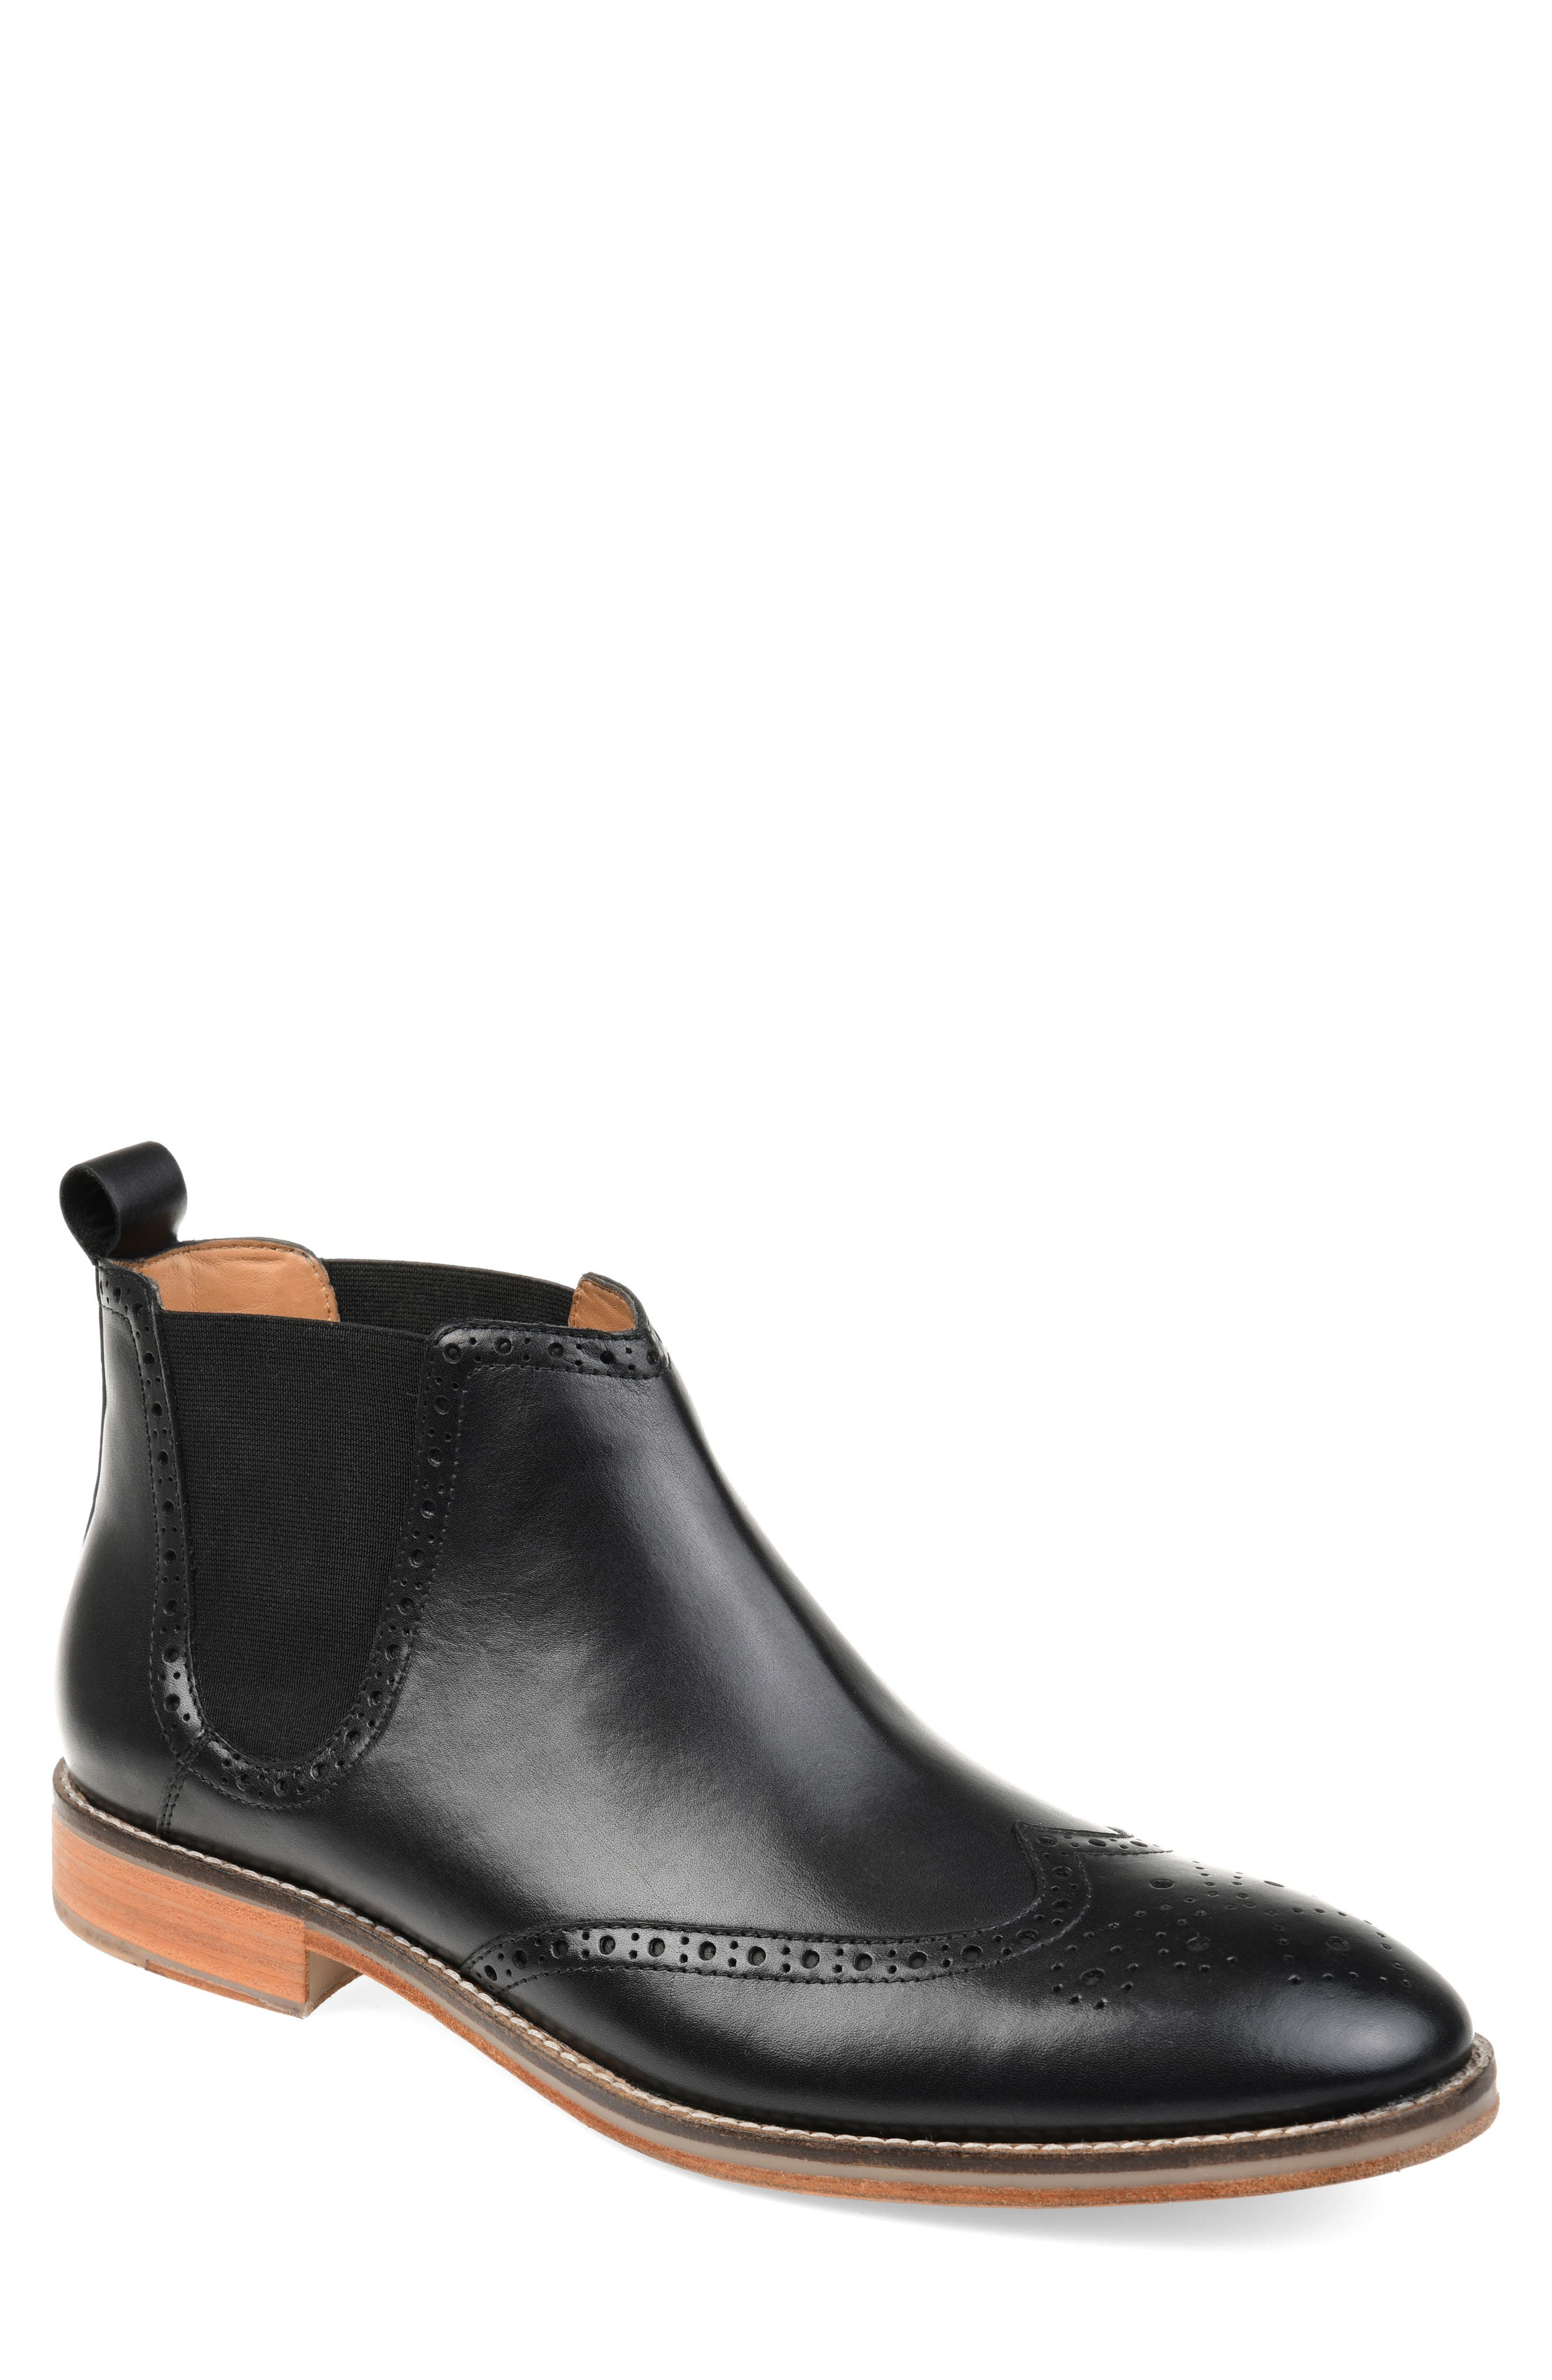 THOMAS AND VINE, Thorne Wingtip Chelsea Boot, Main thumbnail 1, color, BLACK LEATHER